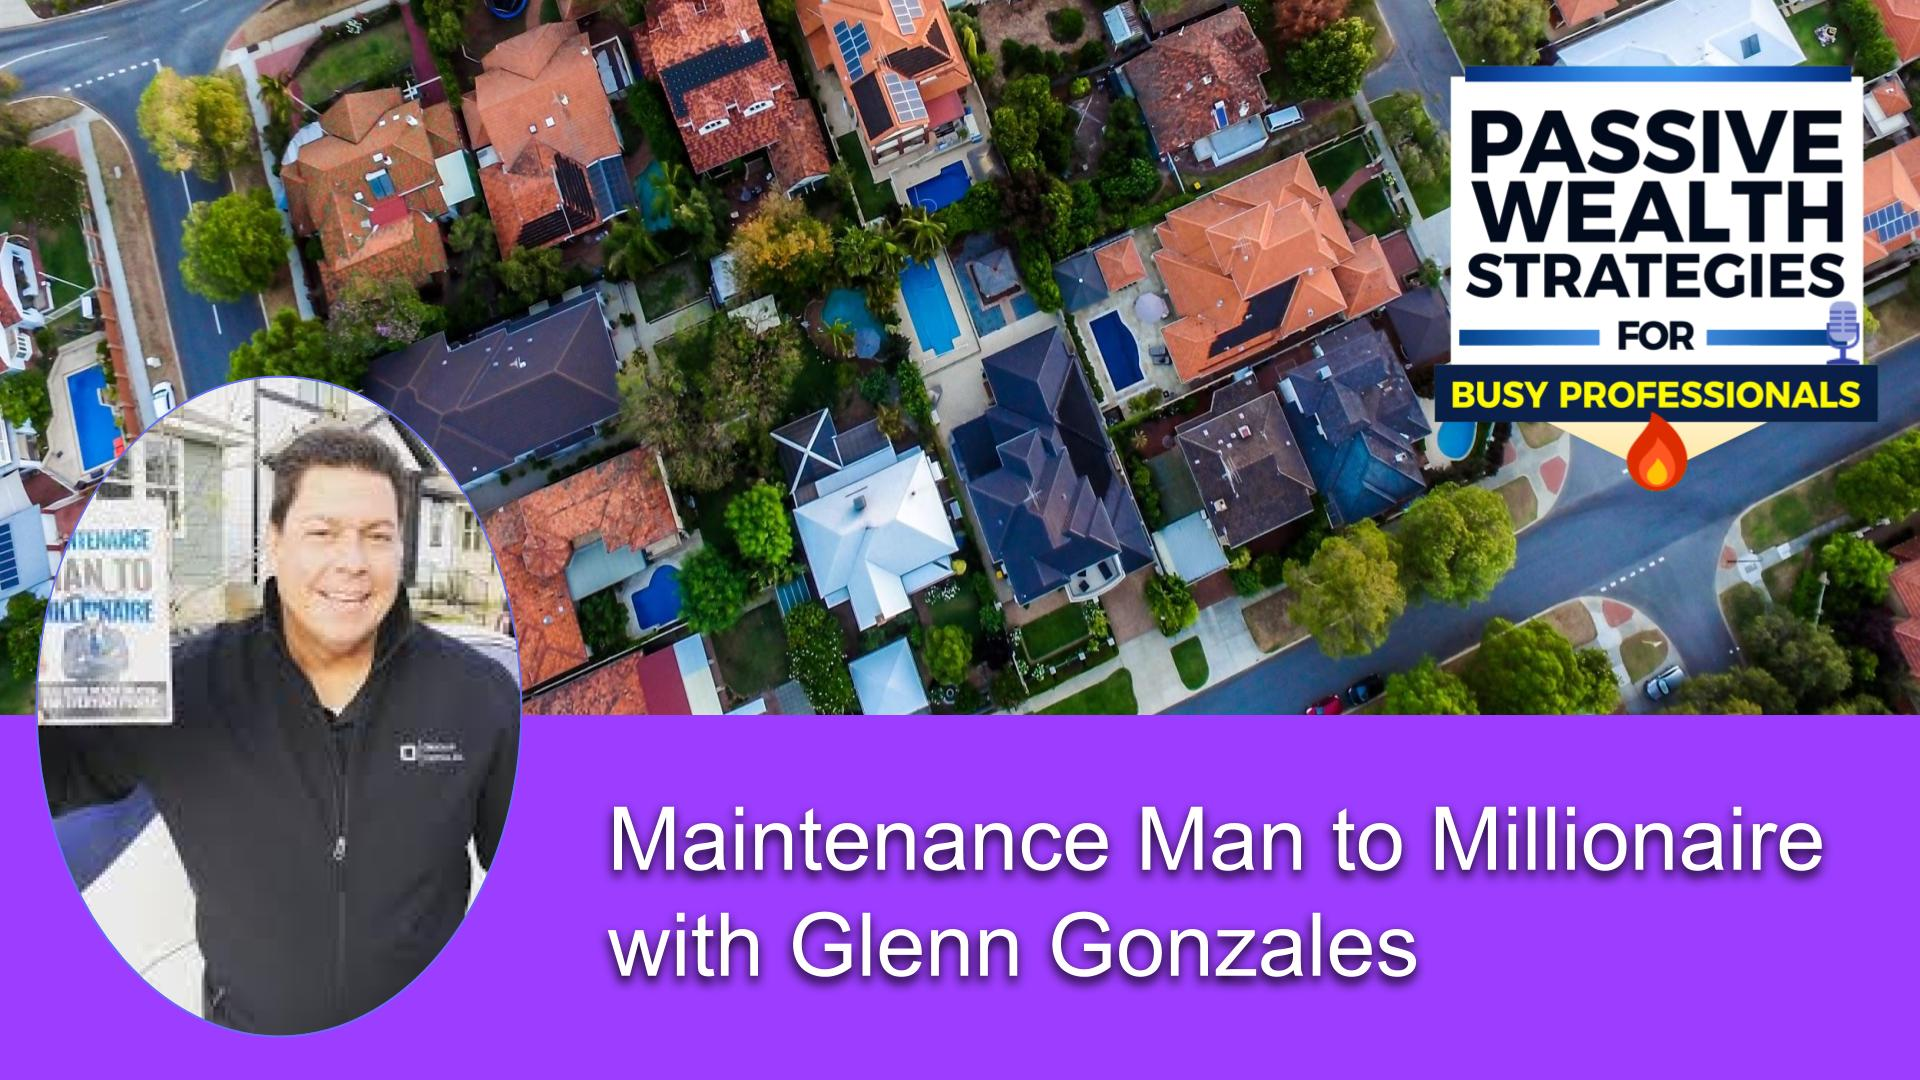 Maintenance Man to Millionaire with Glenn Gonzales